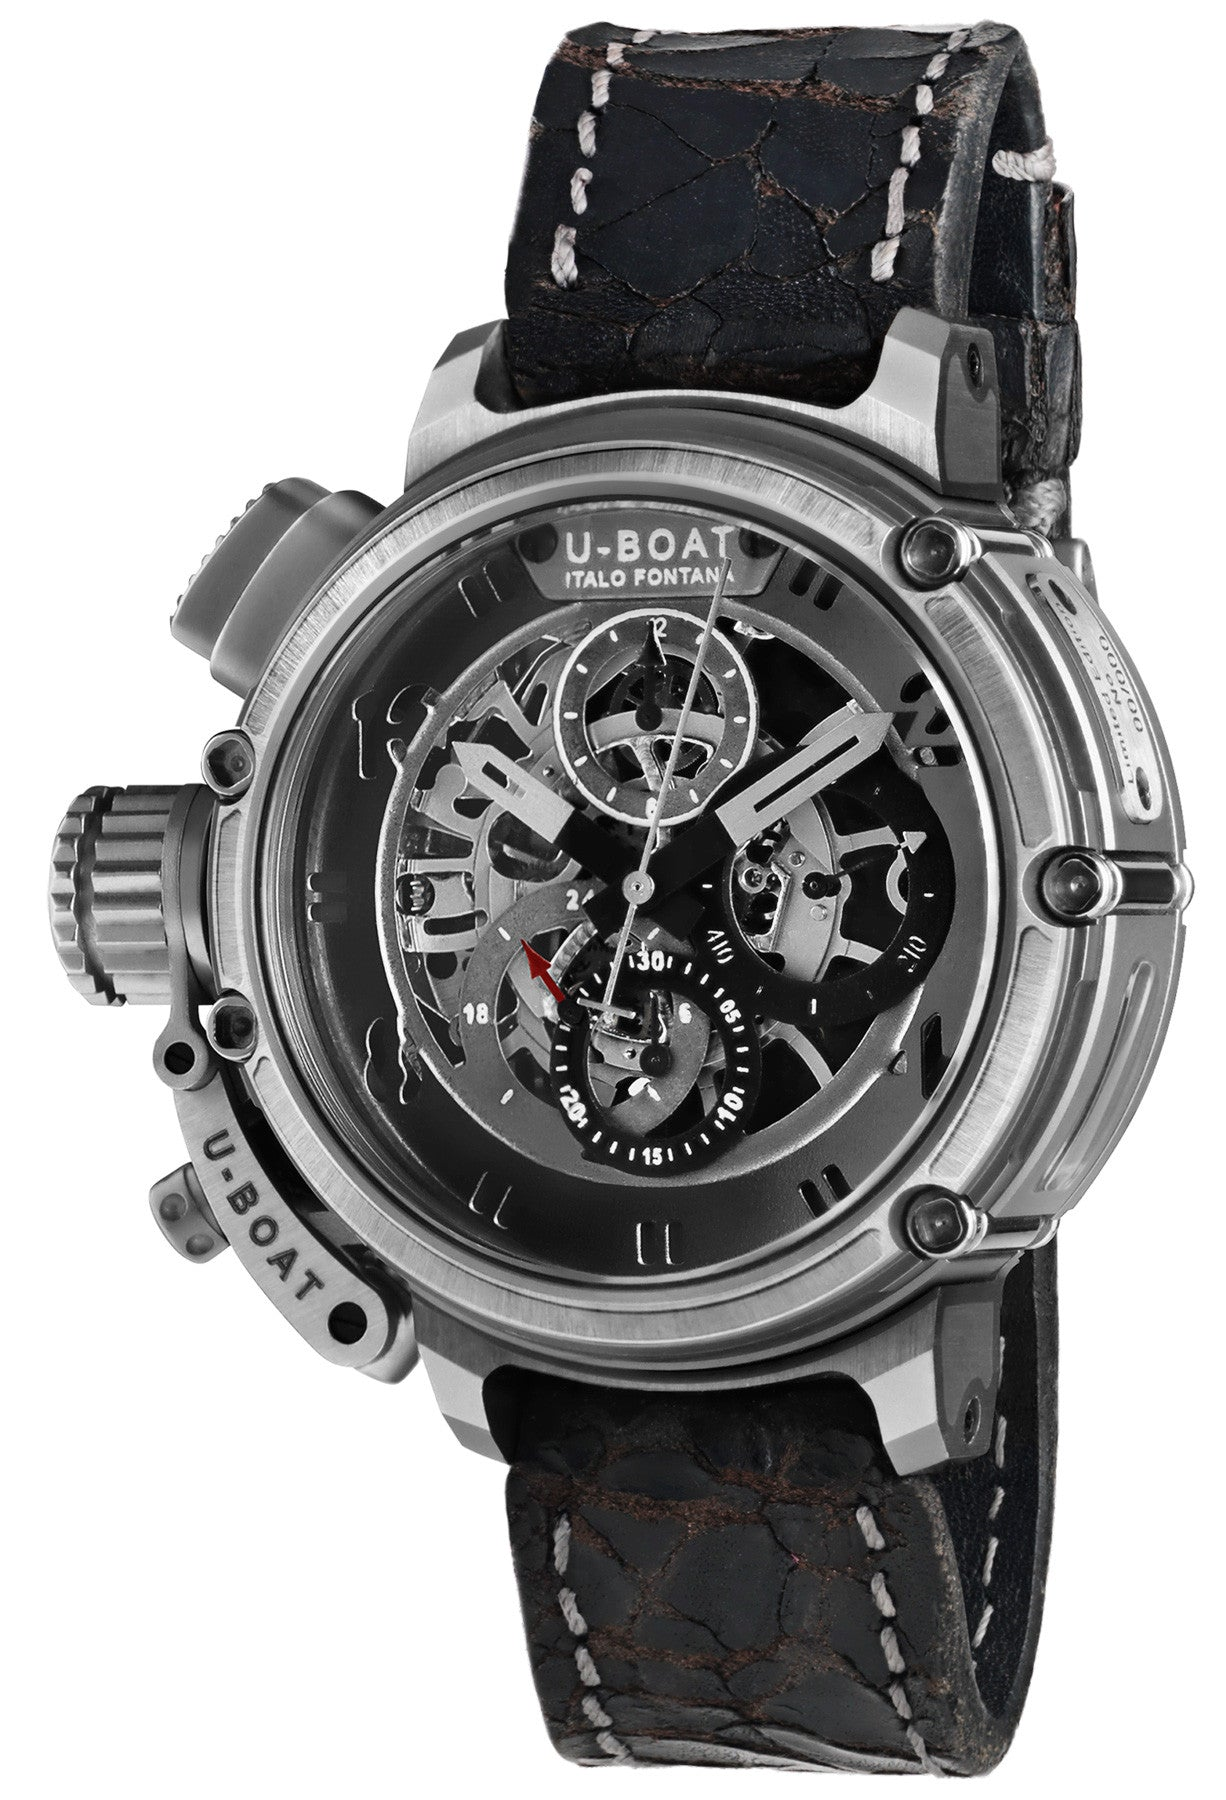 U-Boat Watch Chimera Titanium Skeleton Limited Edition